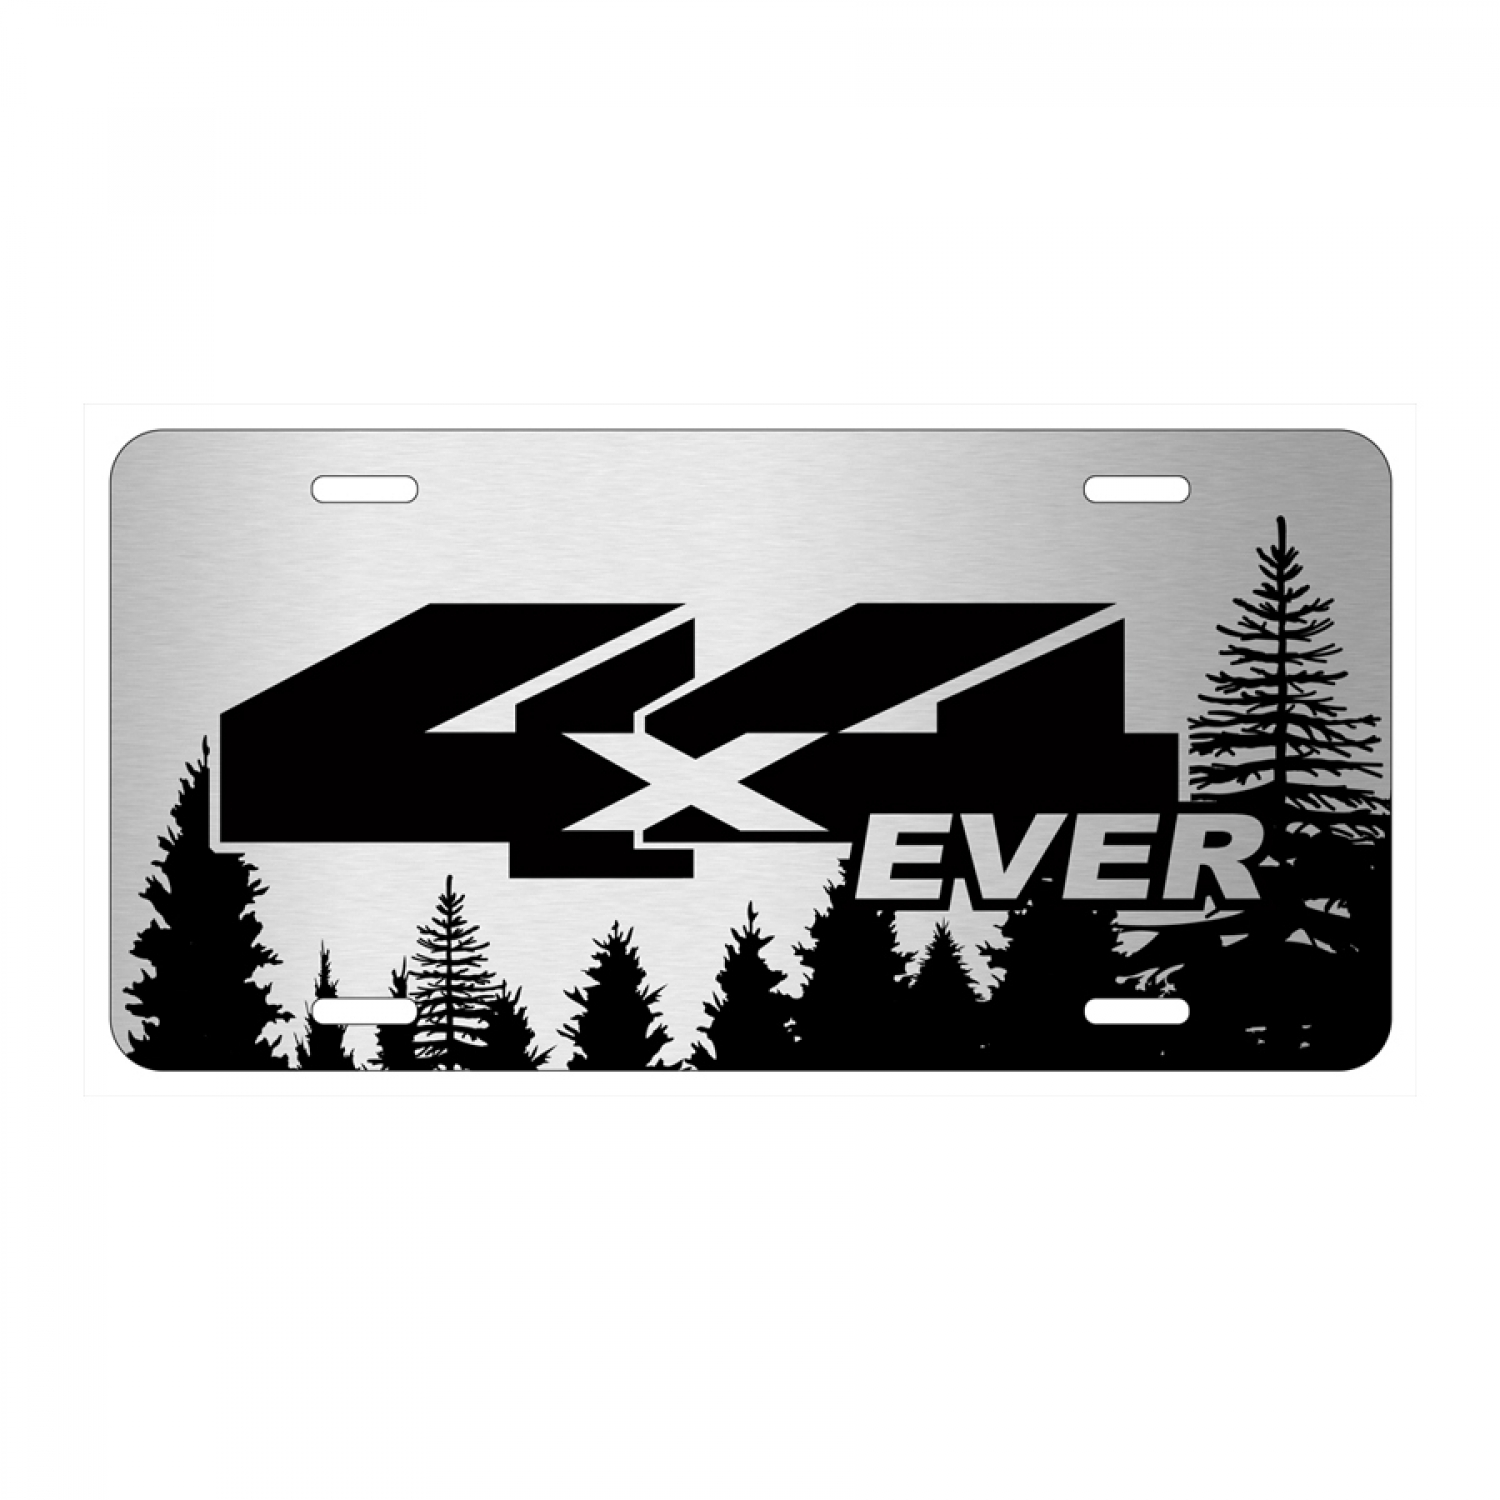 Jeep 4X4 Ever Forrest Sillhouette Graphic Brush Aluminum License Plate